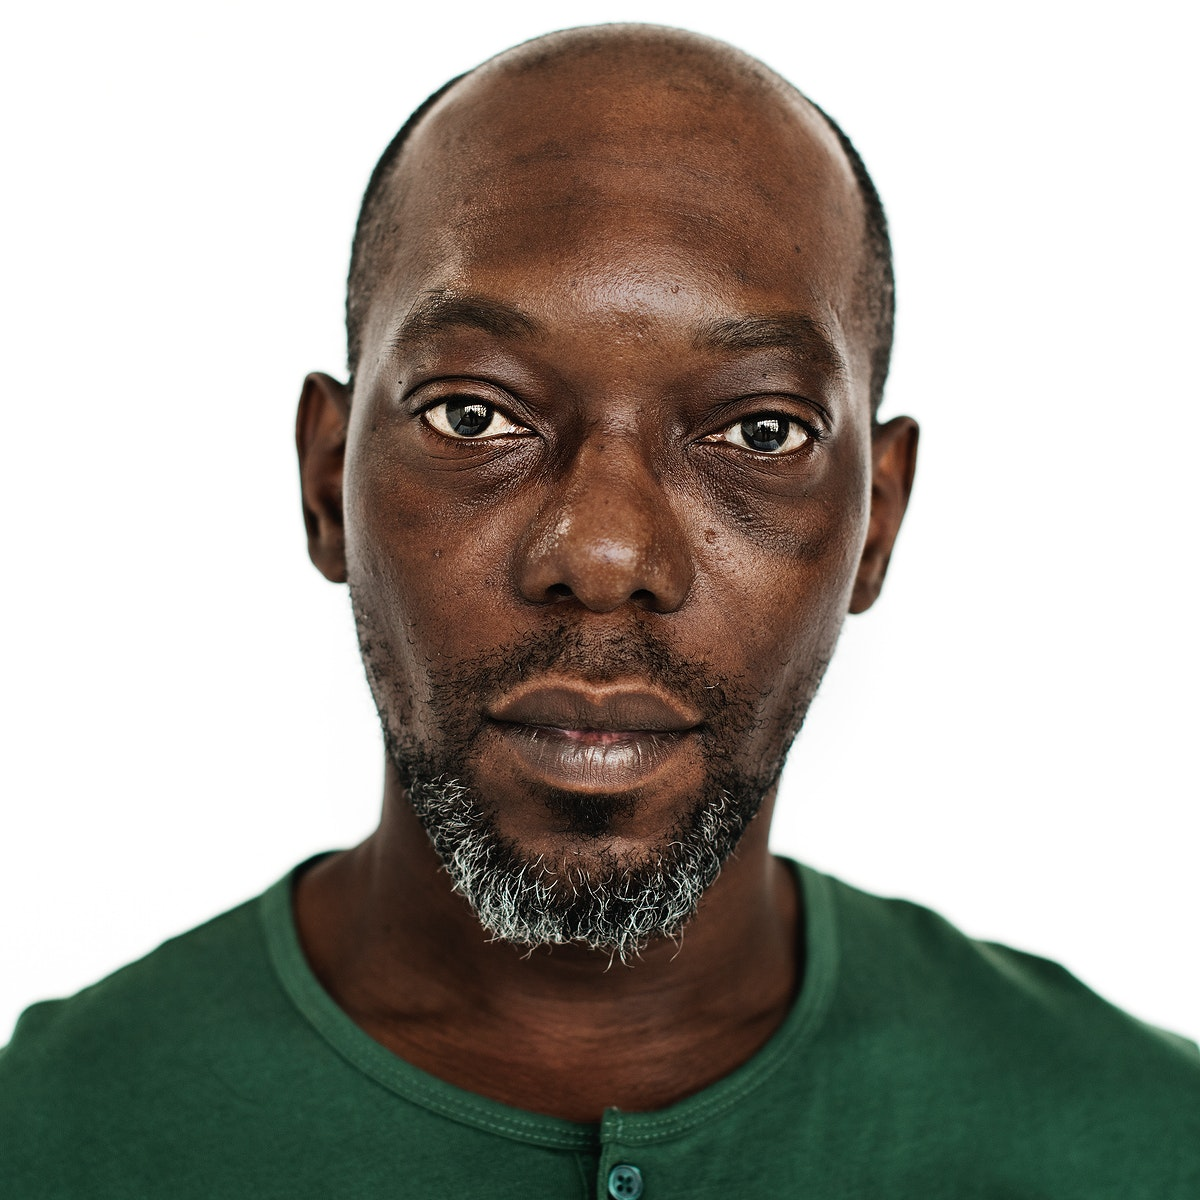 Worldface-Congolese guy in a white background